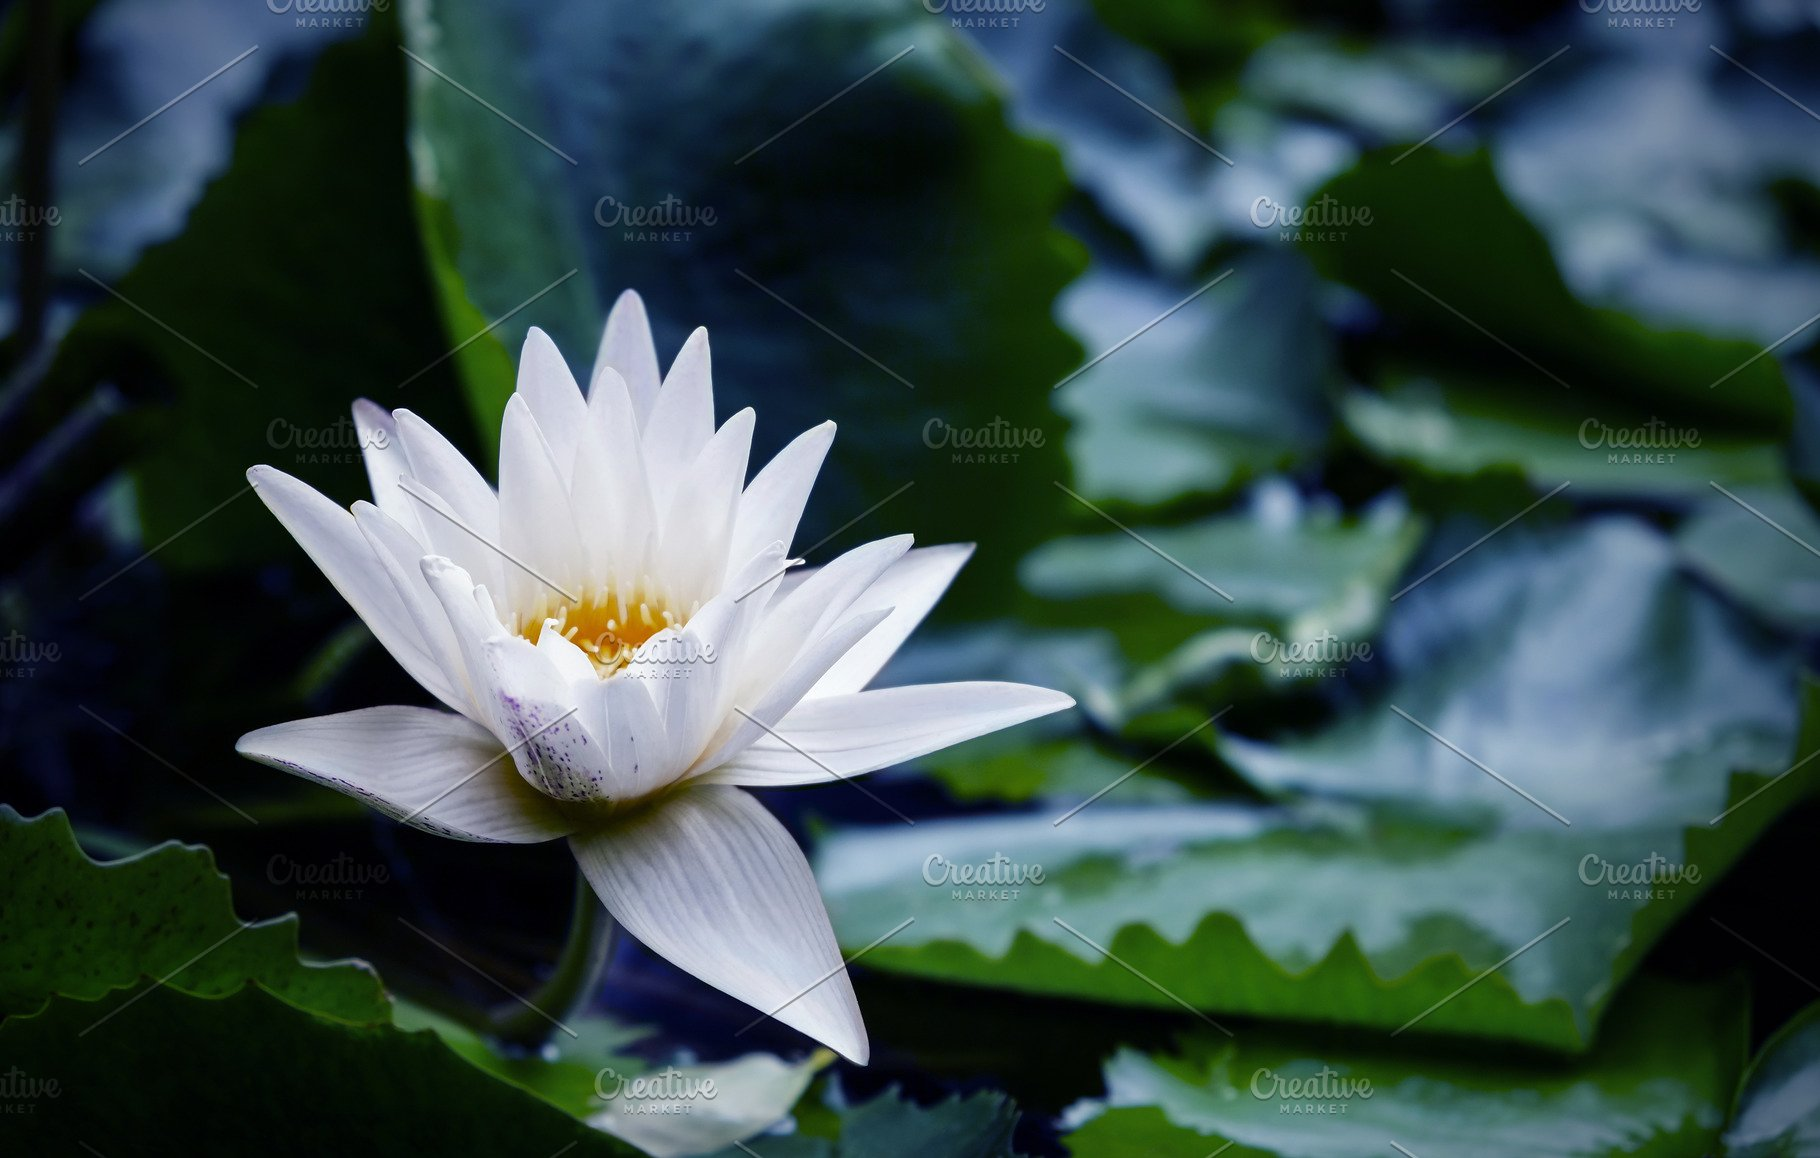 White Lotus Flower With Green Leaves Nature Photos Creative Market